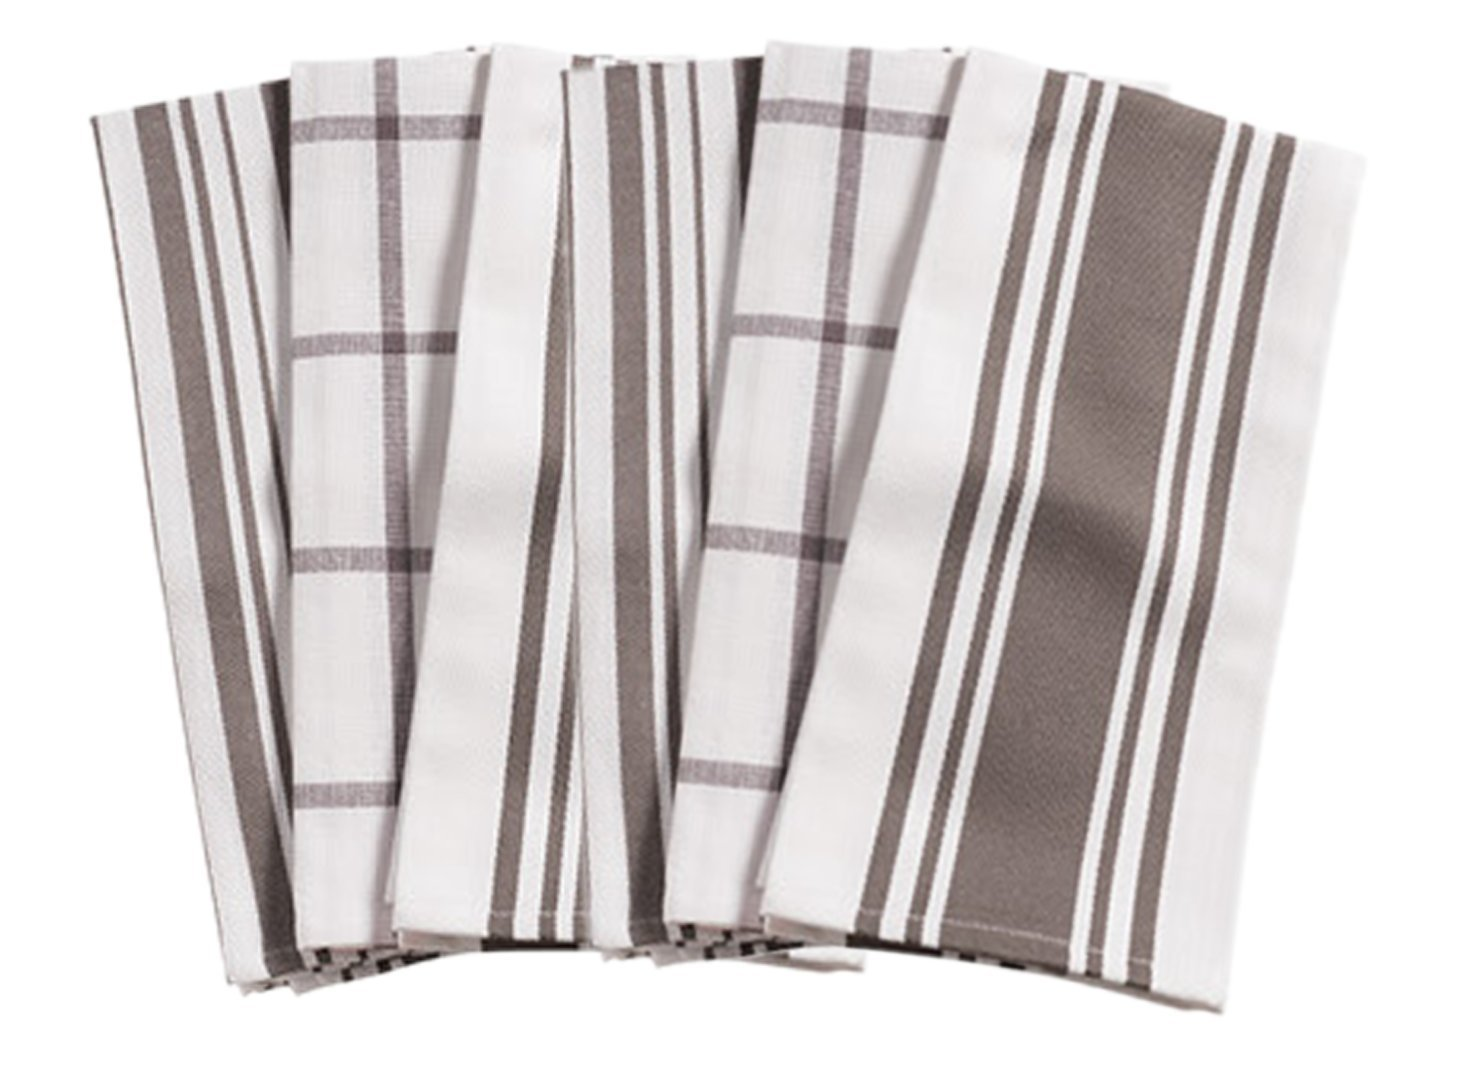 KAF Home Kitchen Towels, Set of 6, Pewter & White, 100% Cotton, Machine Washable, Ultra Absorbent